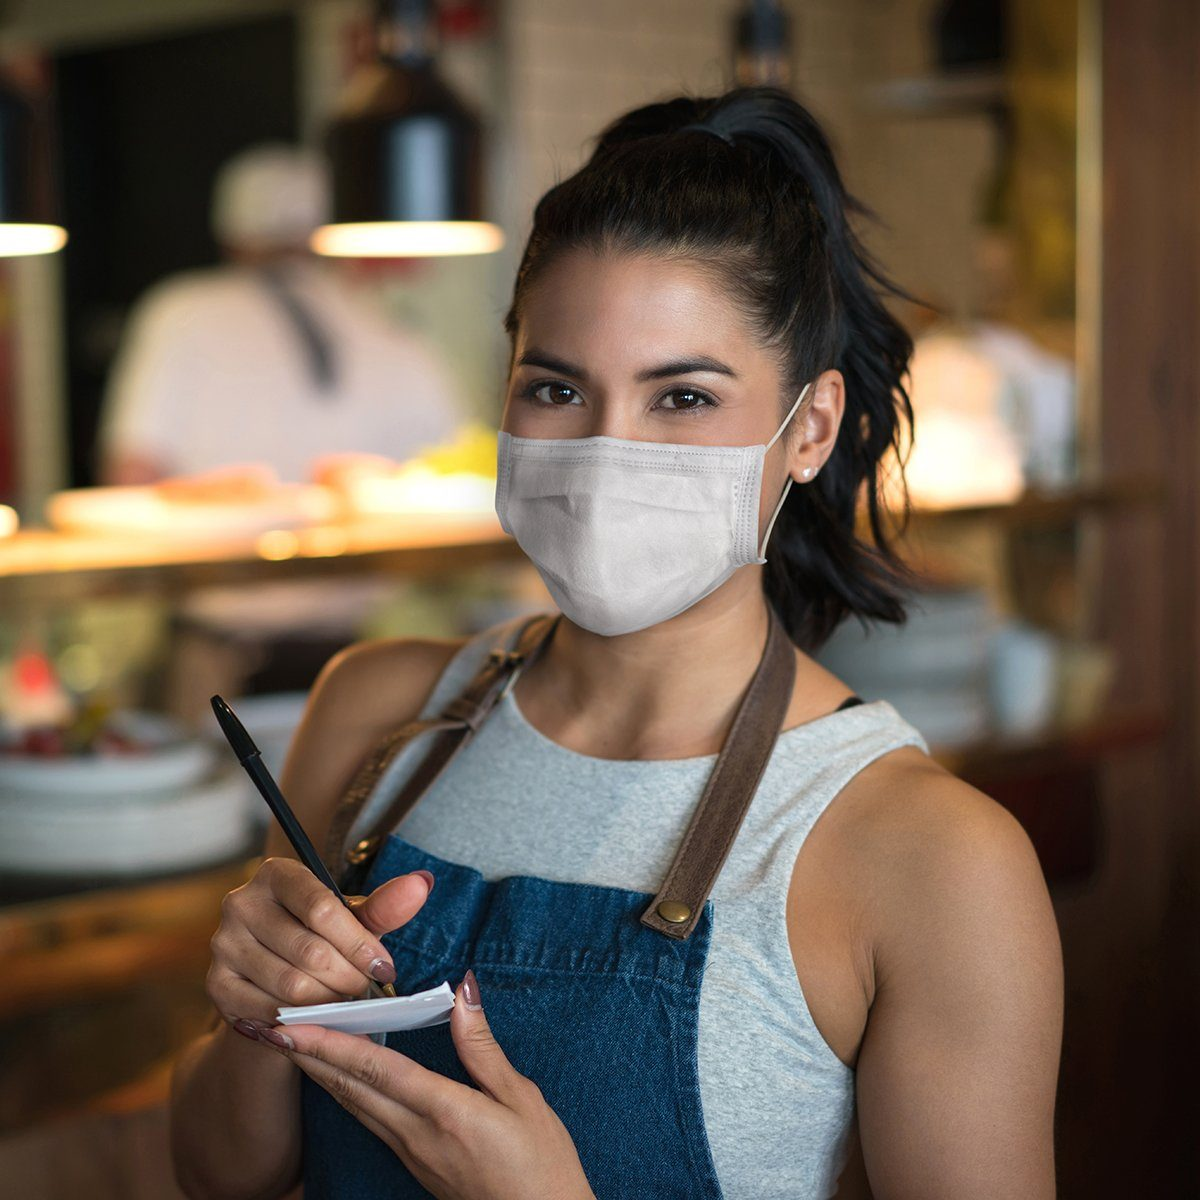 waitress holding pad and pen